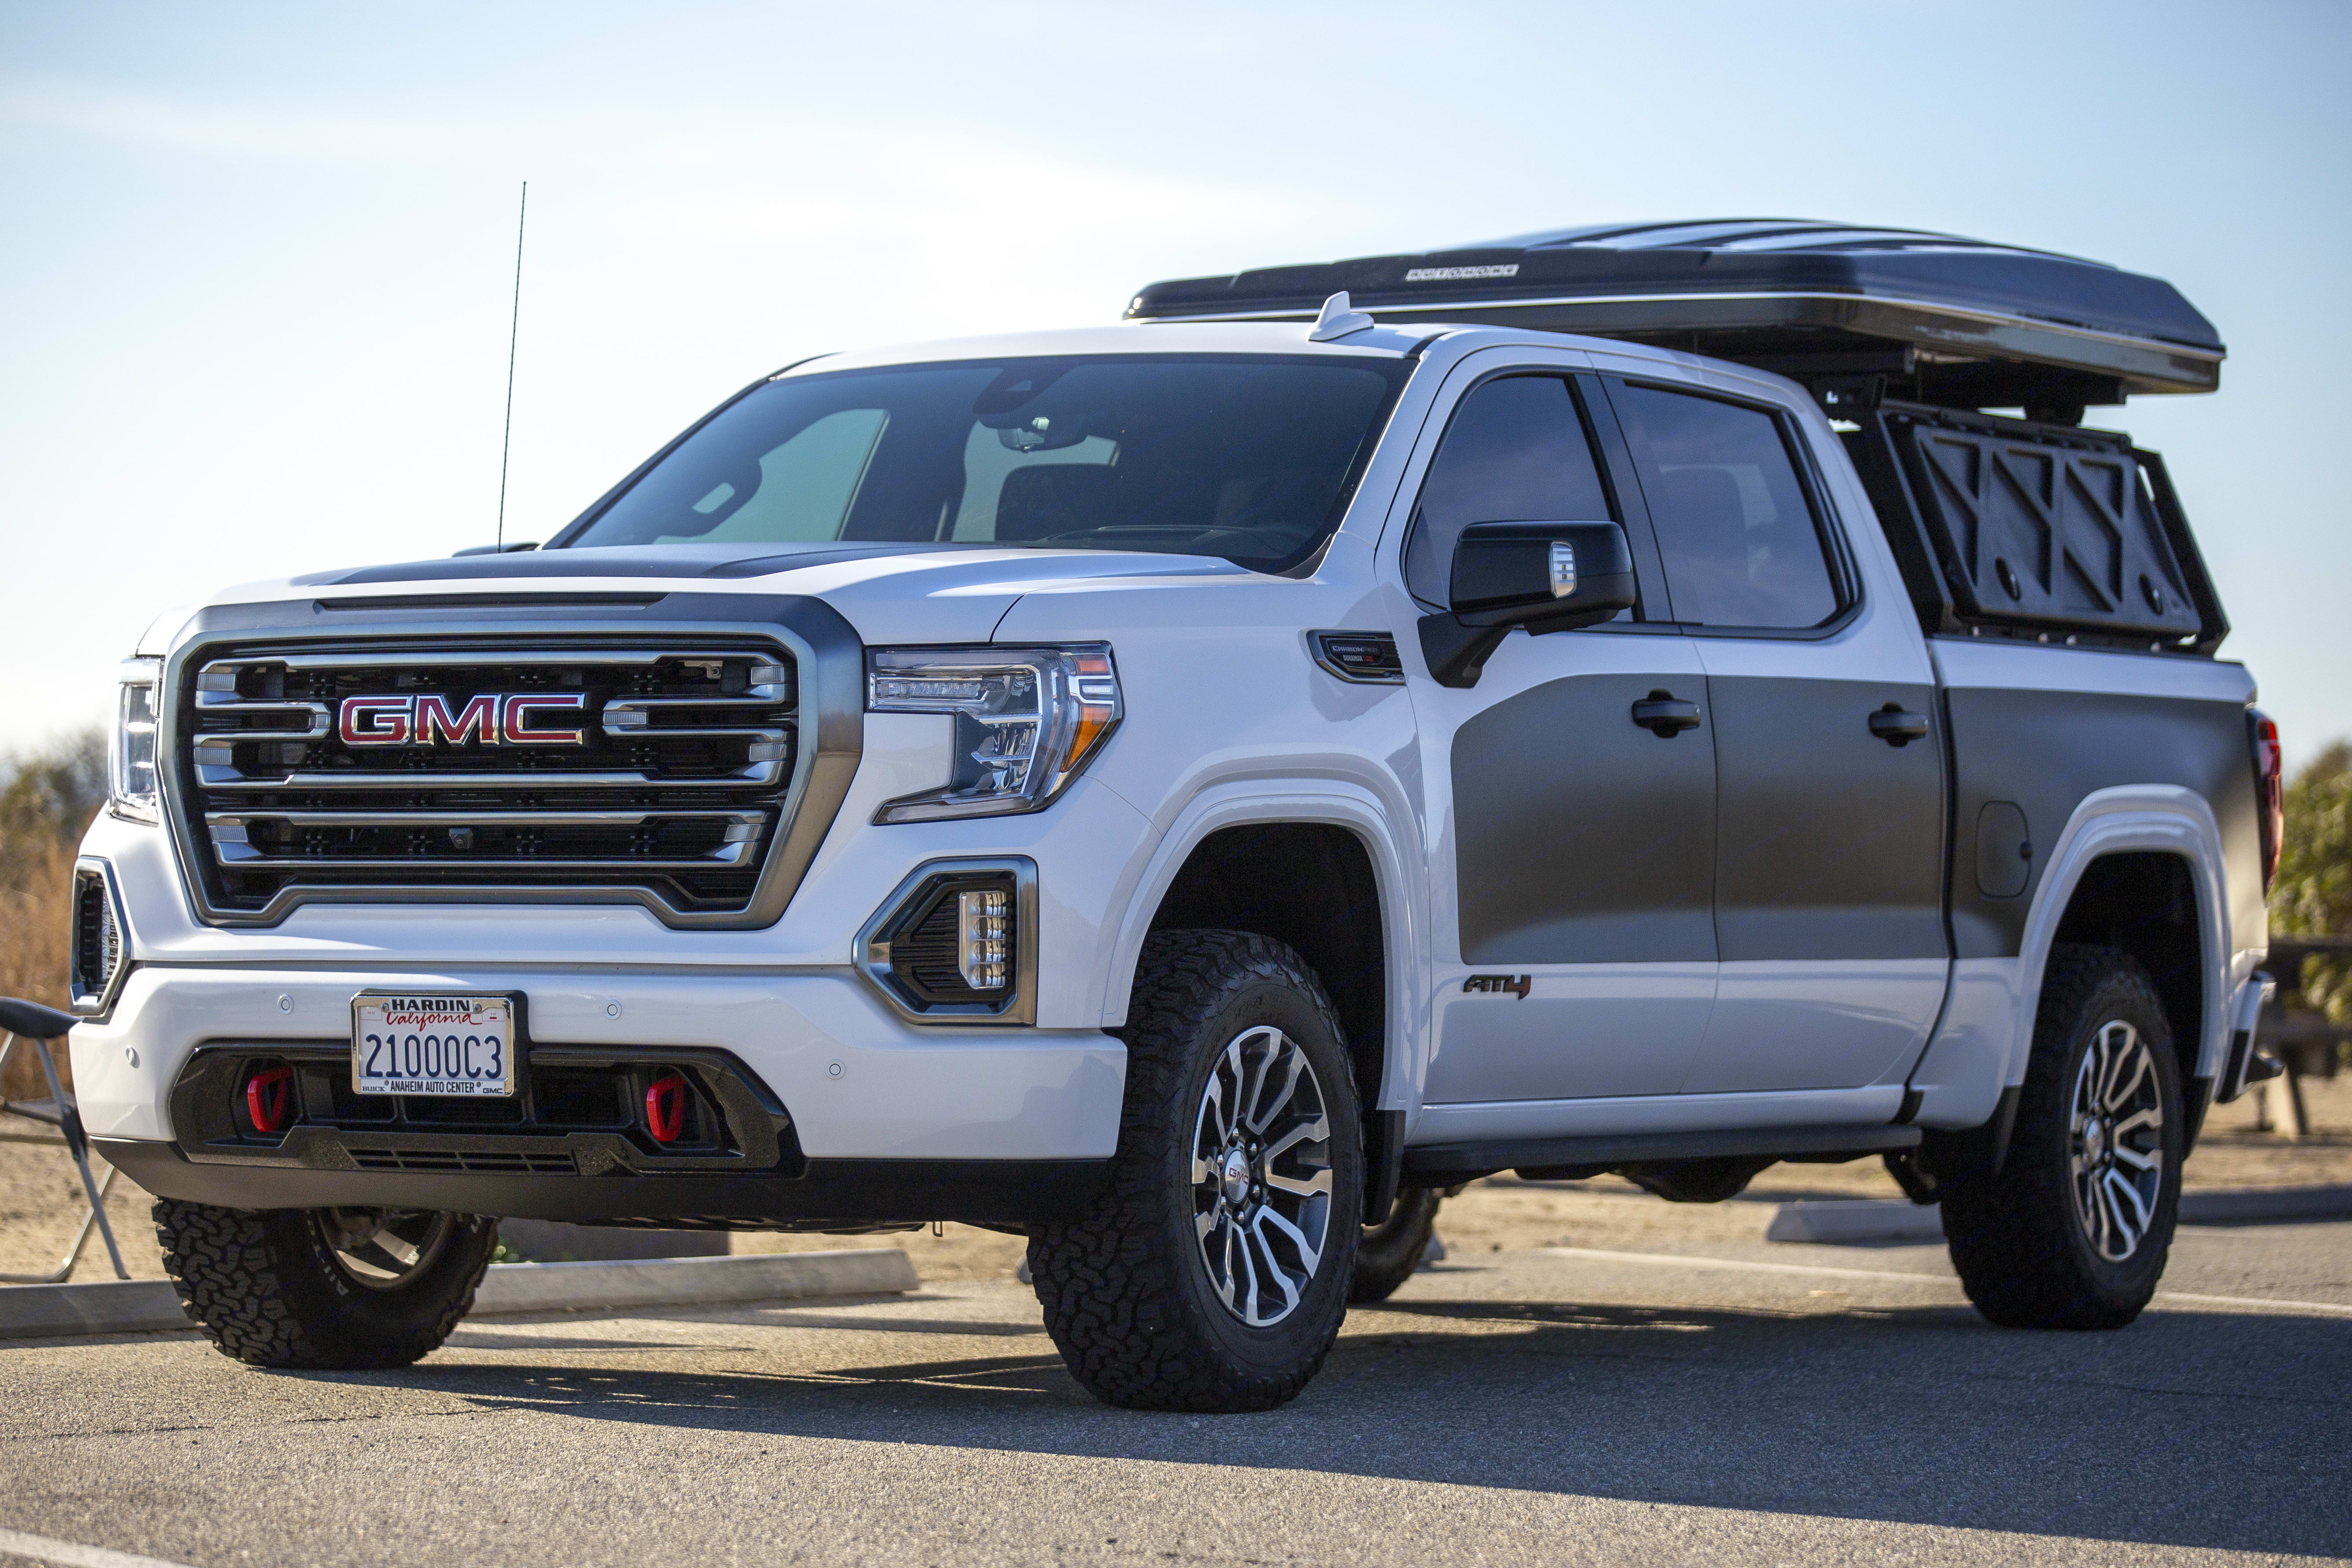 Tent aerodynamic on the road, yet allows for storage of bedding and pillows in back side of hard shell cover.. GMC Sierra 1500 AT4 Duramax Diesel 2021